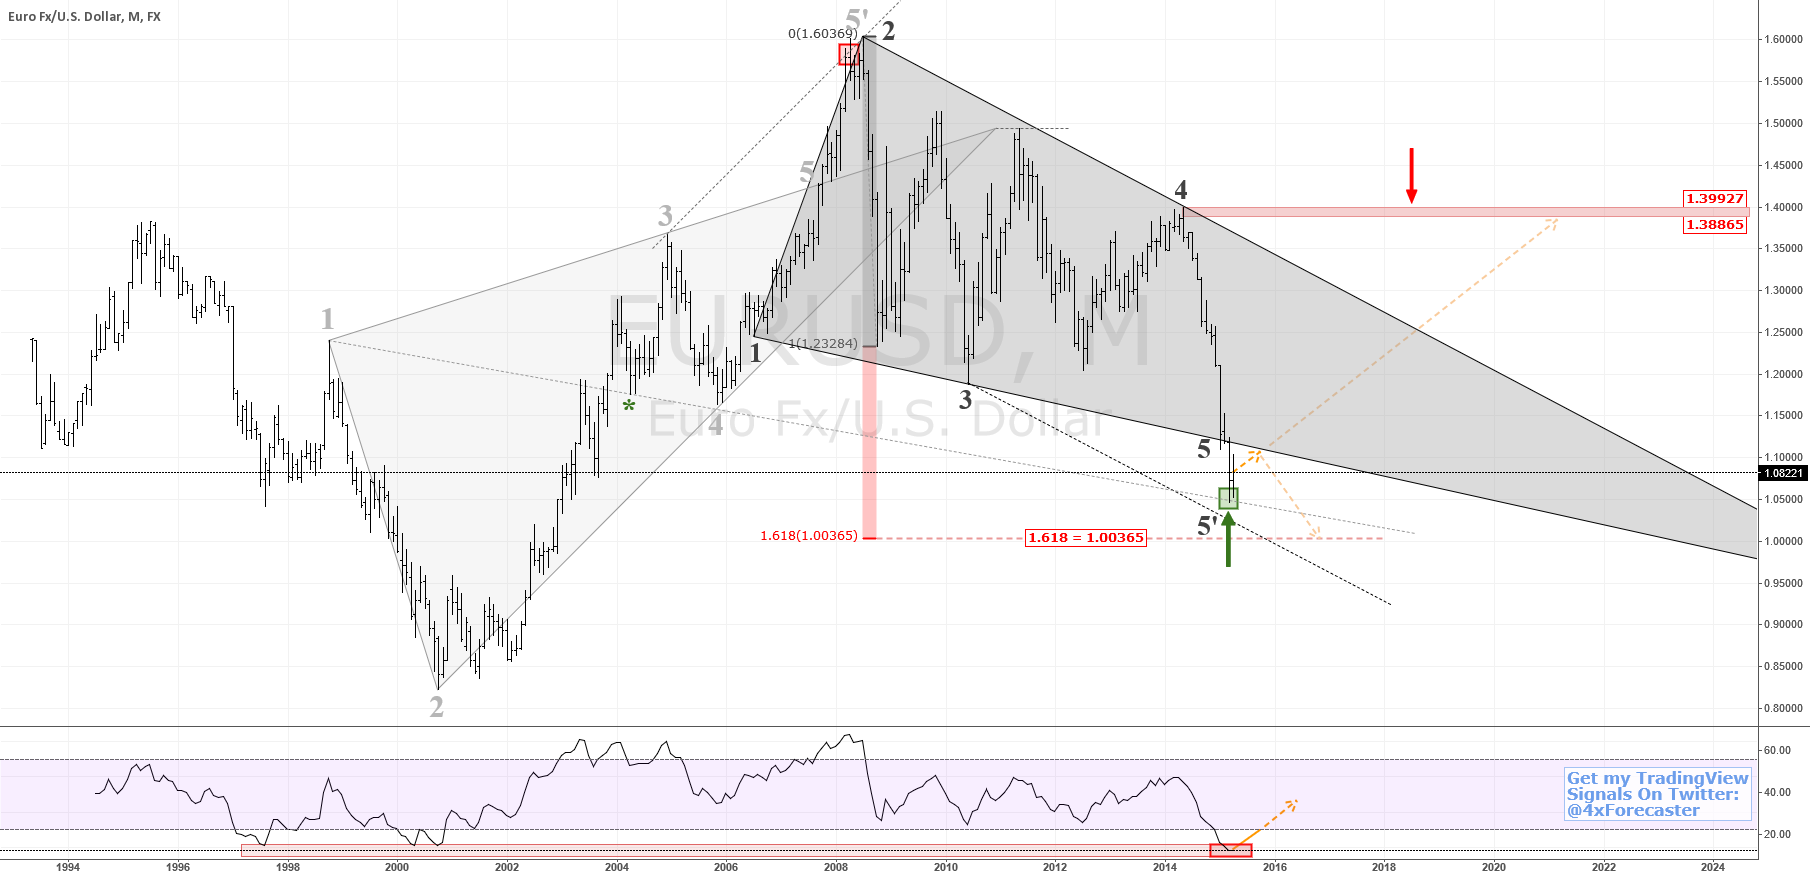 Is $EUR vs. $USD Rallying Back To 1.38865? #euro #forex $bund